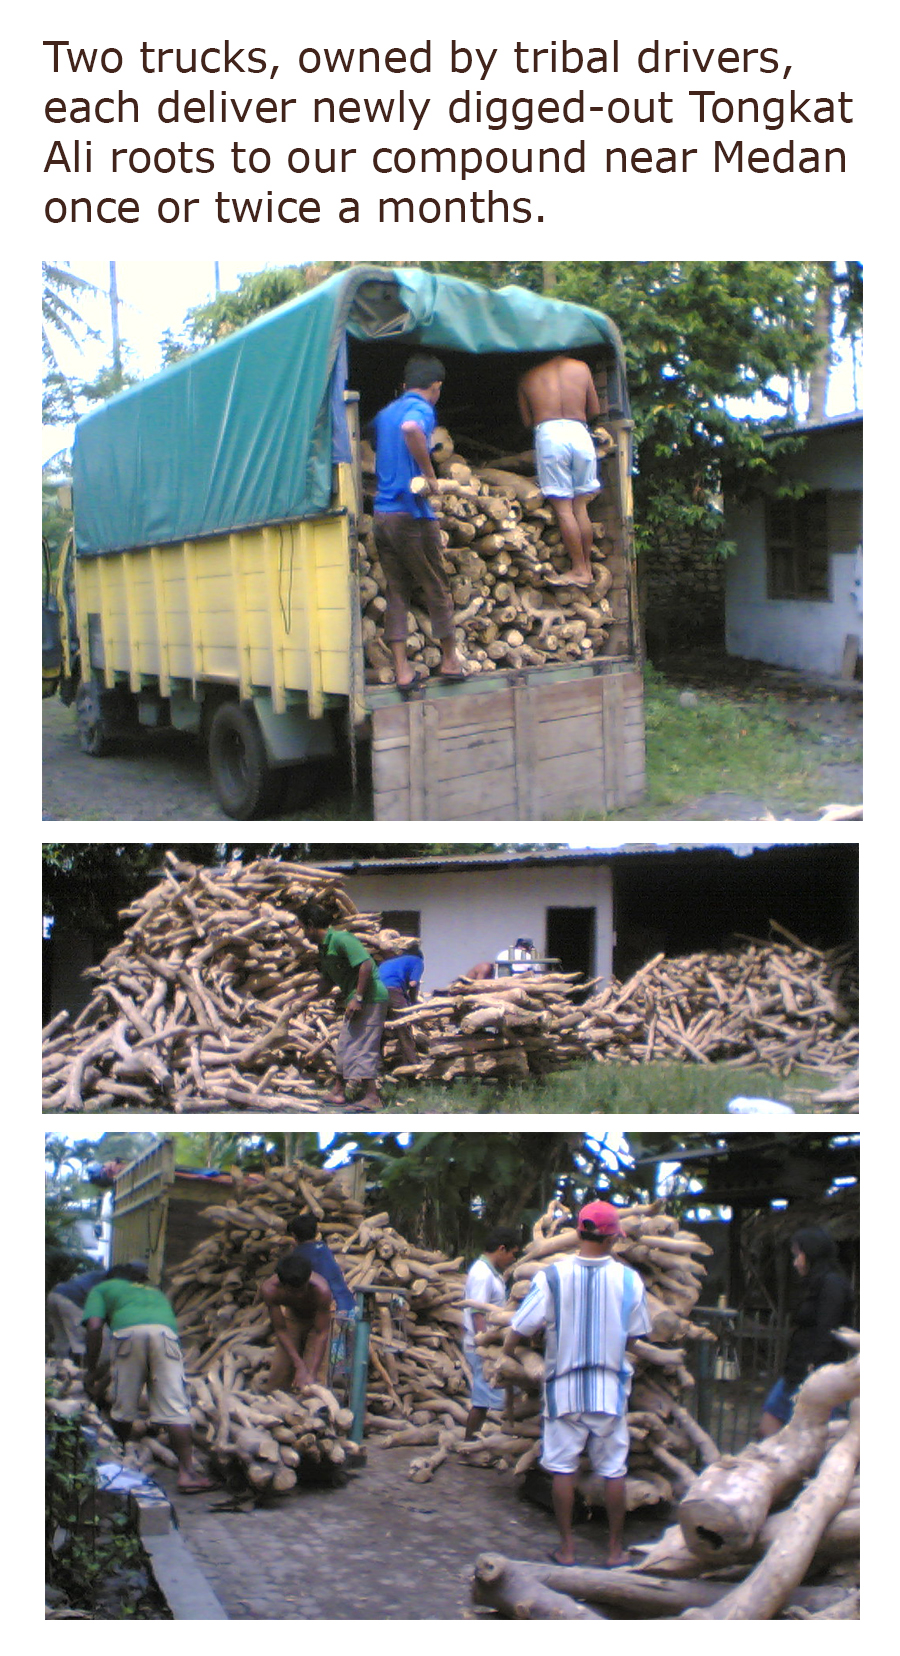 Two truck, owned by tribal drivers, each deliver newly digged-out Tongkat Ali roots to our compound near Medan once or twice a months.